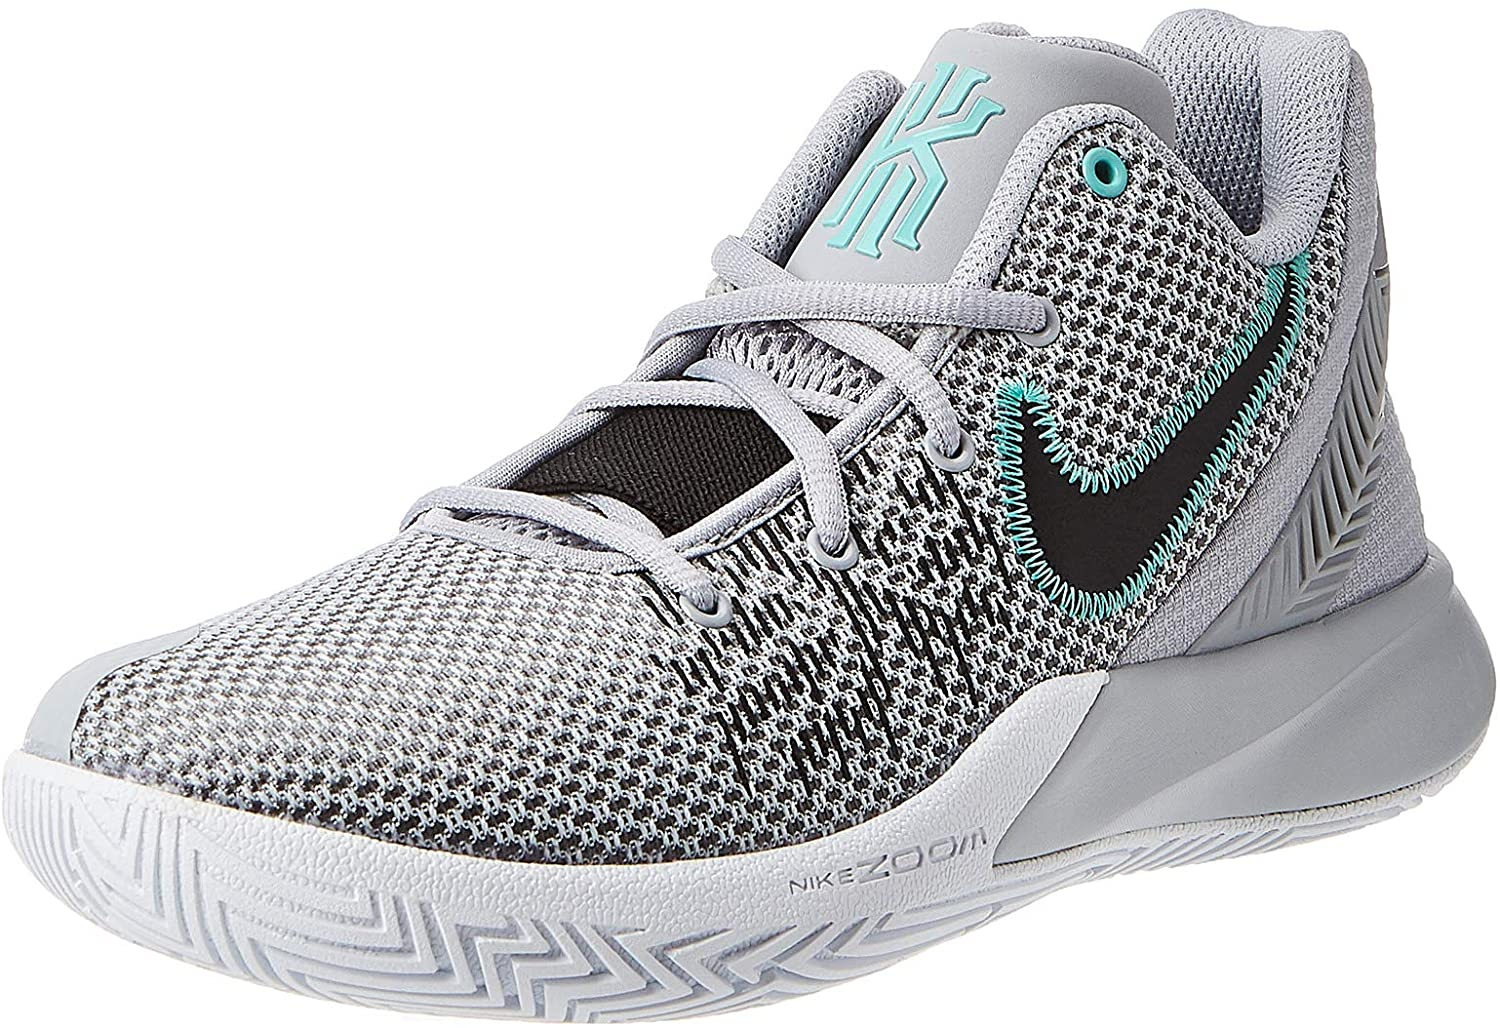 Nike Men Kyrie Flytrap II Basketball-Shoe